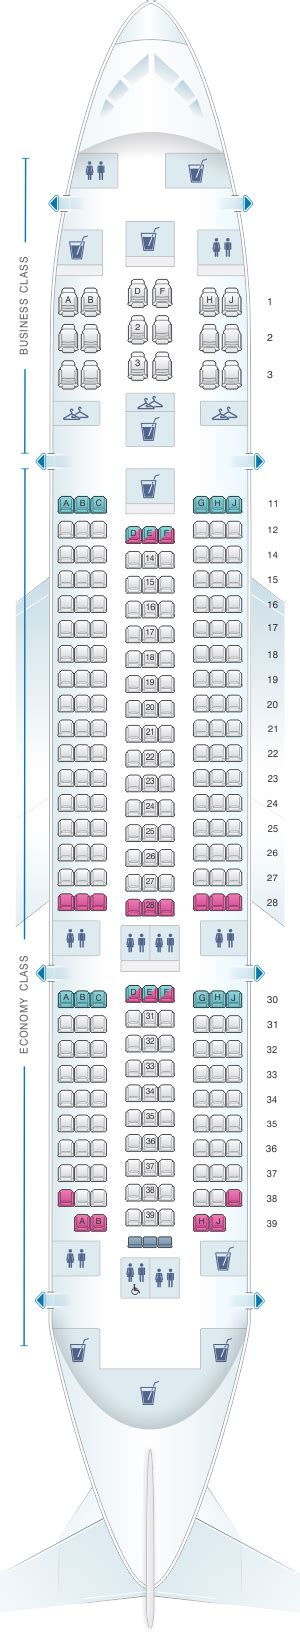 air india seat selection plan de cabine air india boeing b787 dreamliner